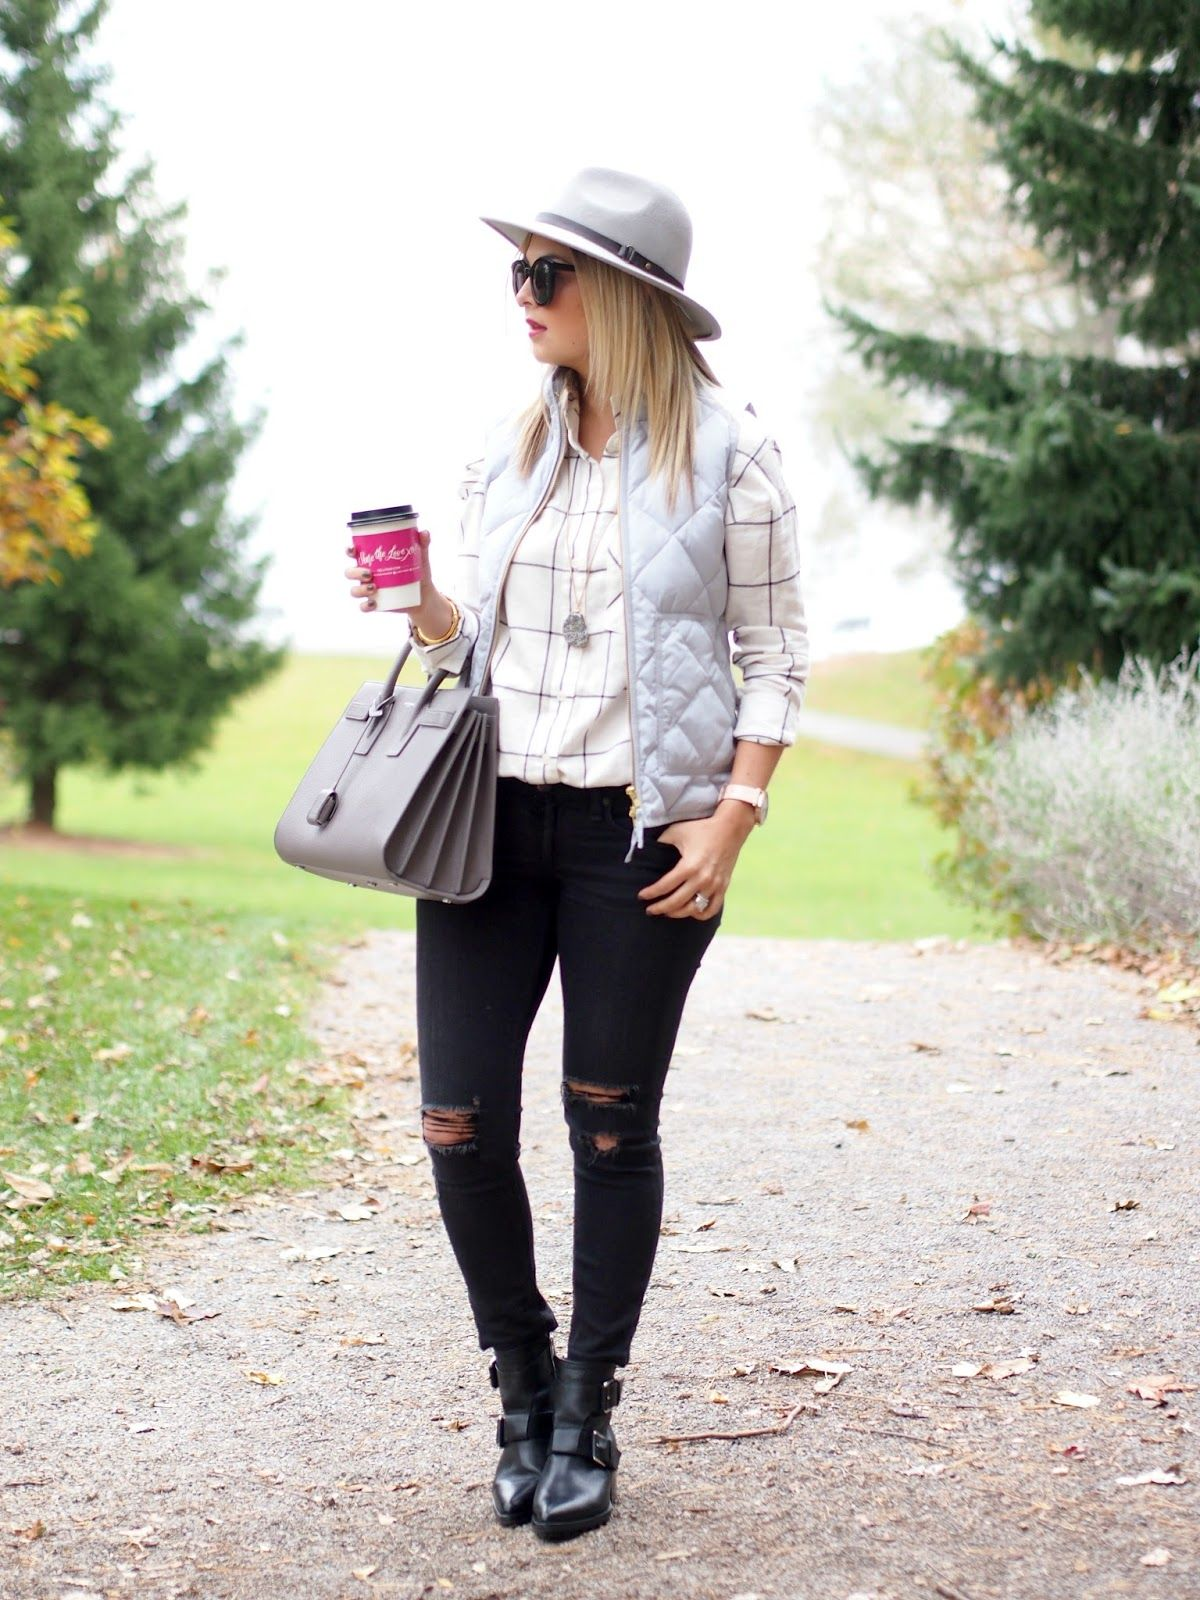 Flannel and denim jacket outfit  Woodsy  SUBURBAN FAUX PAS by Krystin Lee  Pinterest  Hijab chic